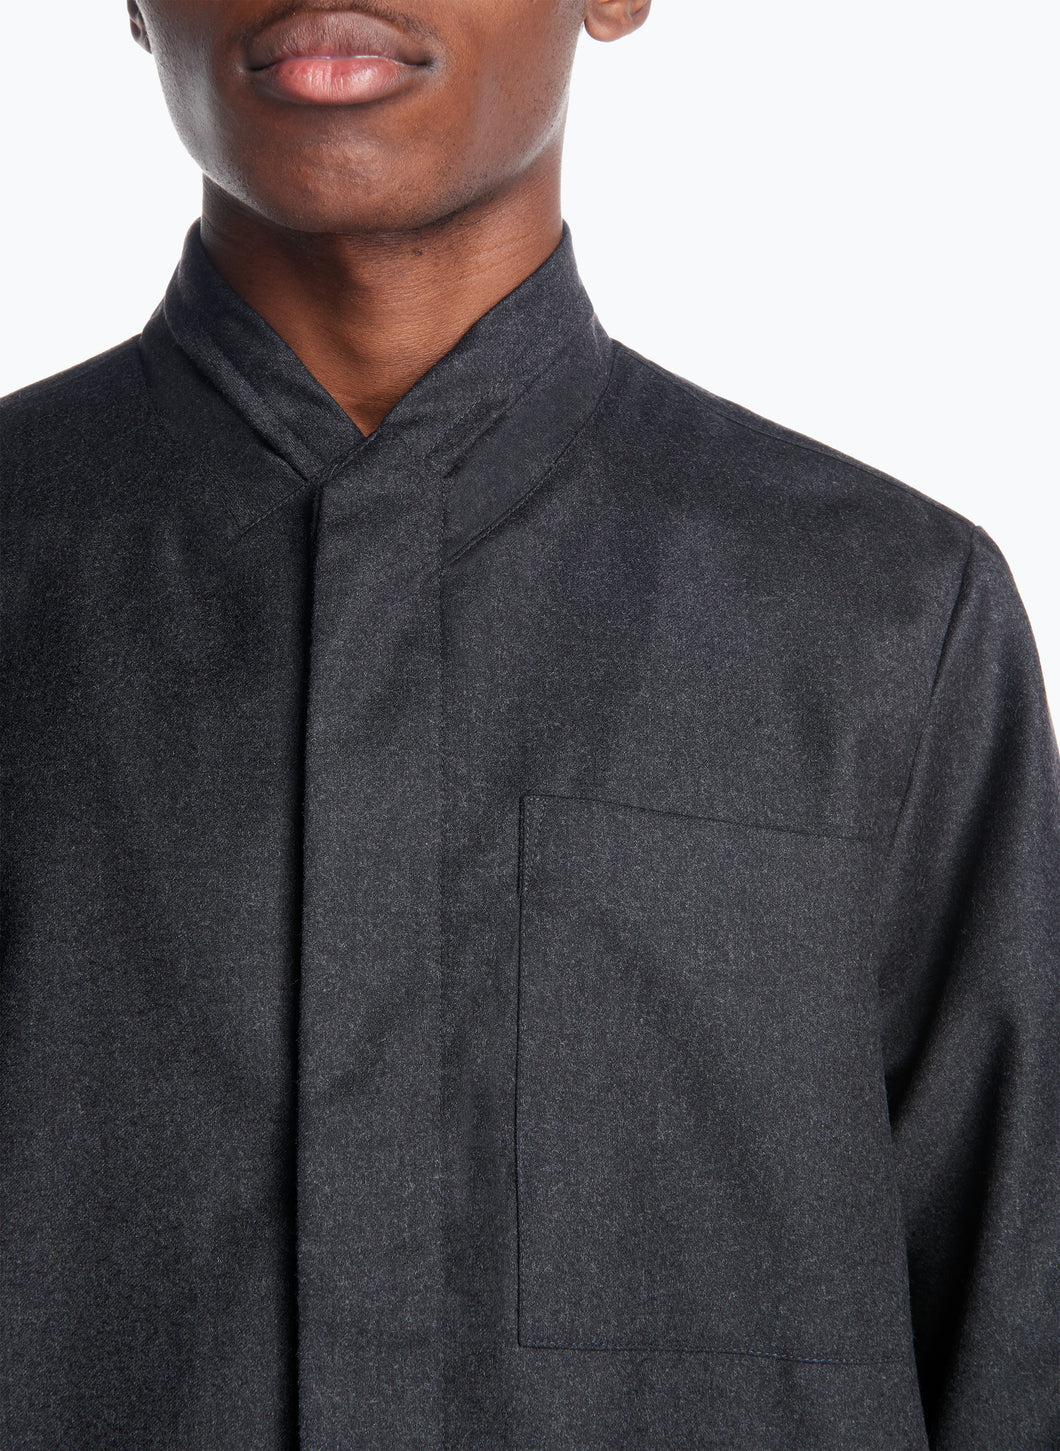 Double Collar Overshirt in Dark Grey Flannel Wool